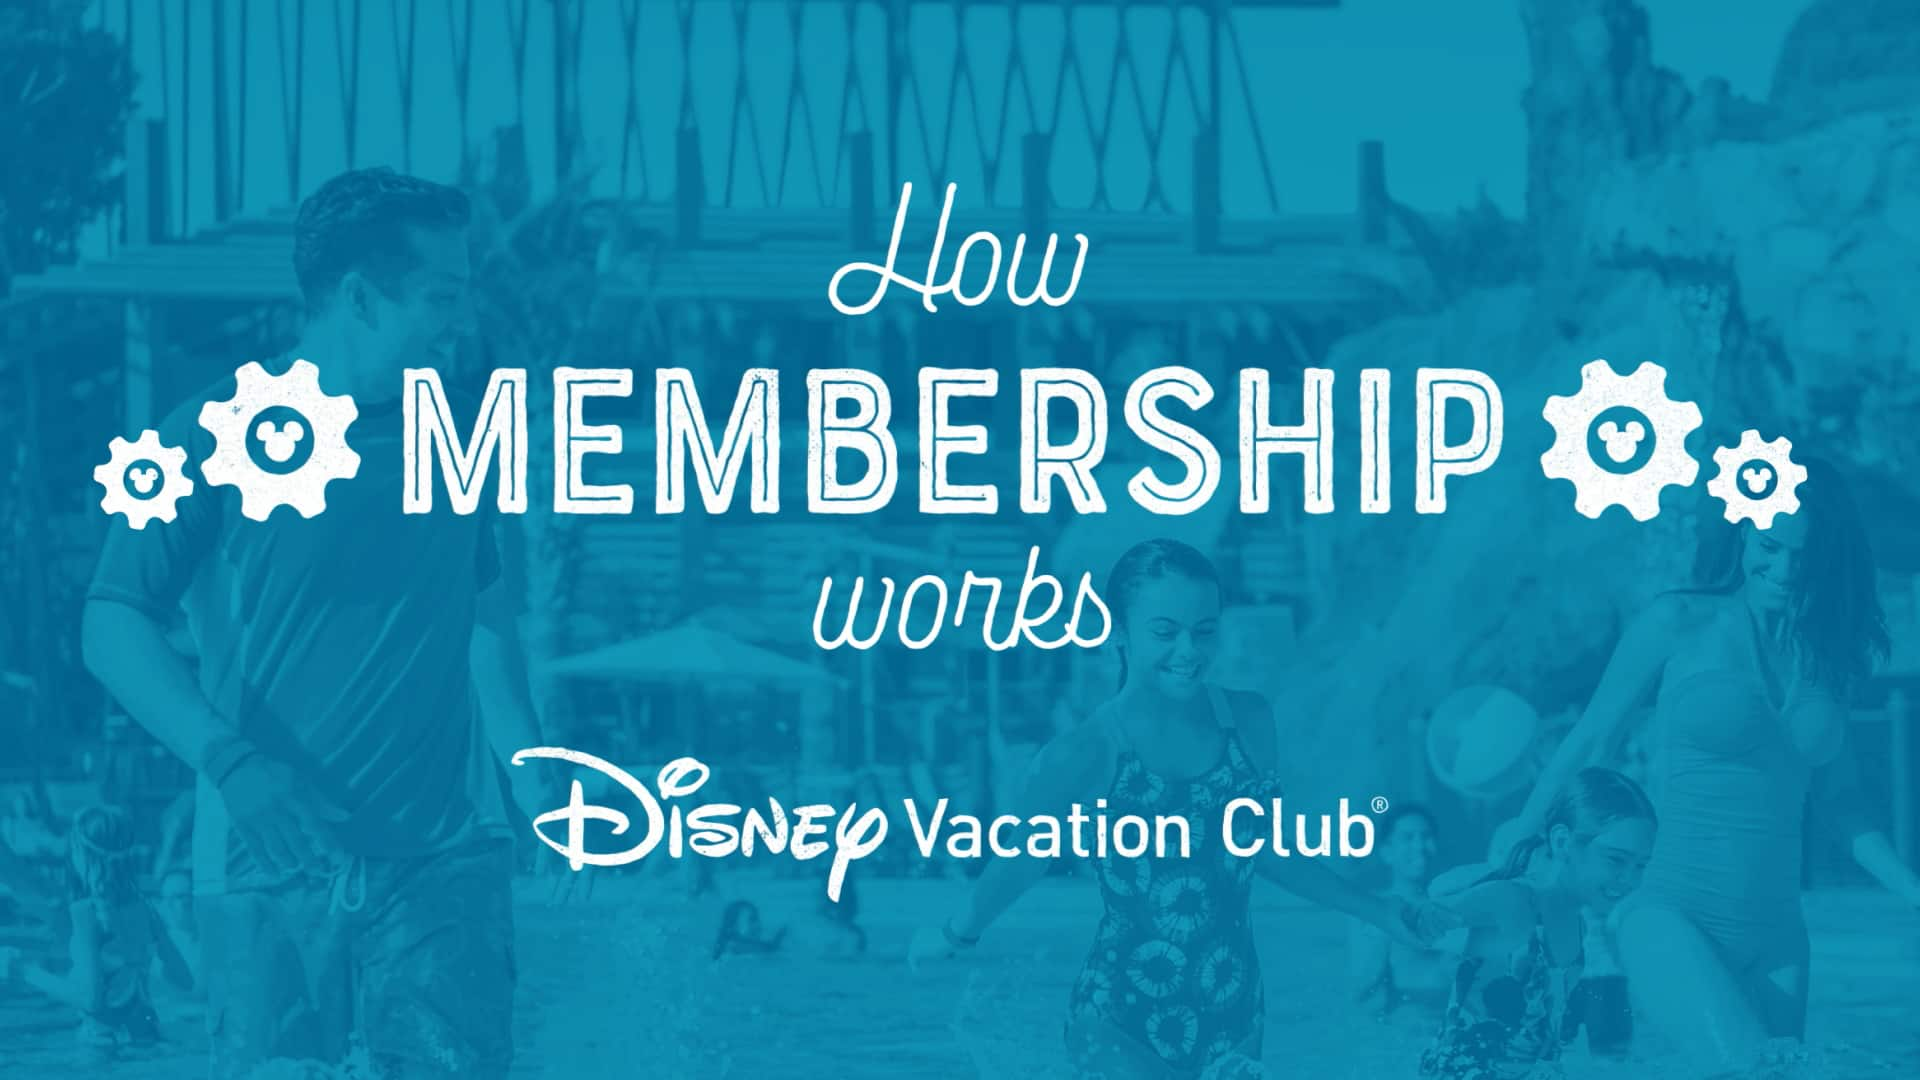 Discover Disney Vacation Club  Disney Vacation Club